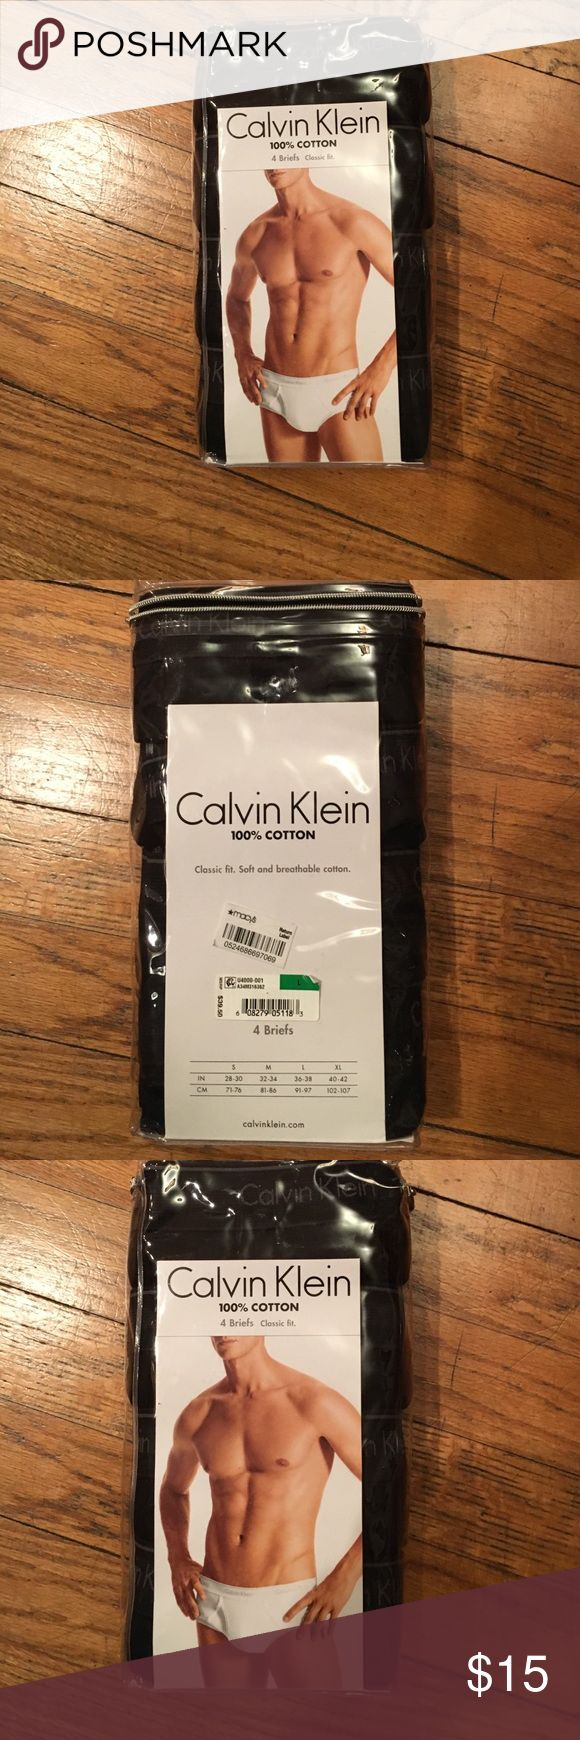 Brand new Calvin Klein briefs men's S/L Nice item bundle and save thank you for looking Calvin Klein Accessories